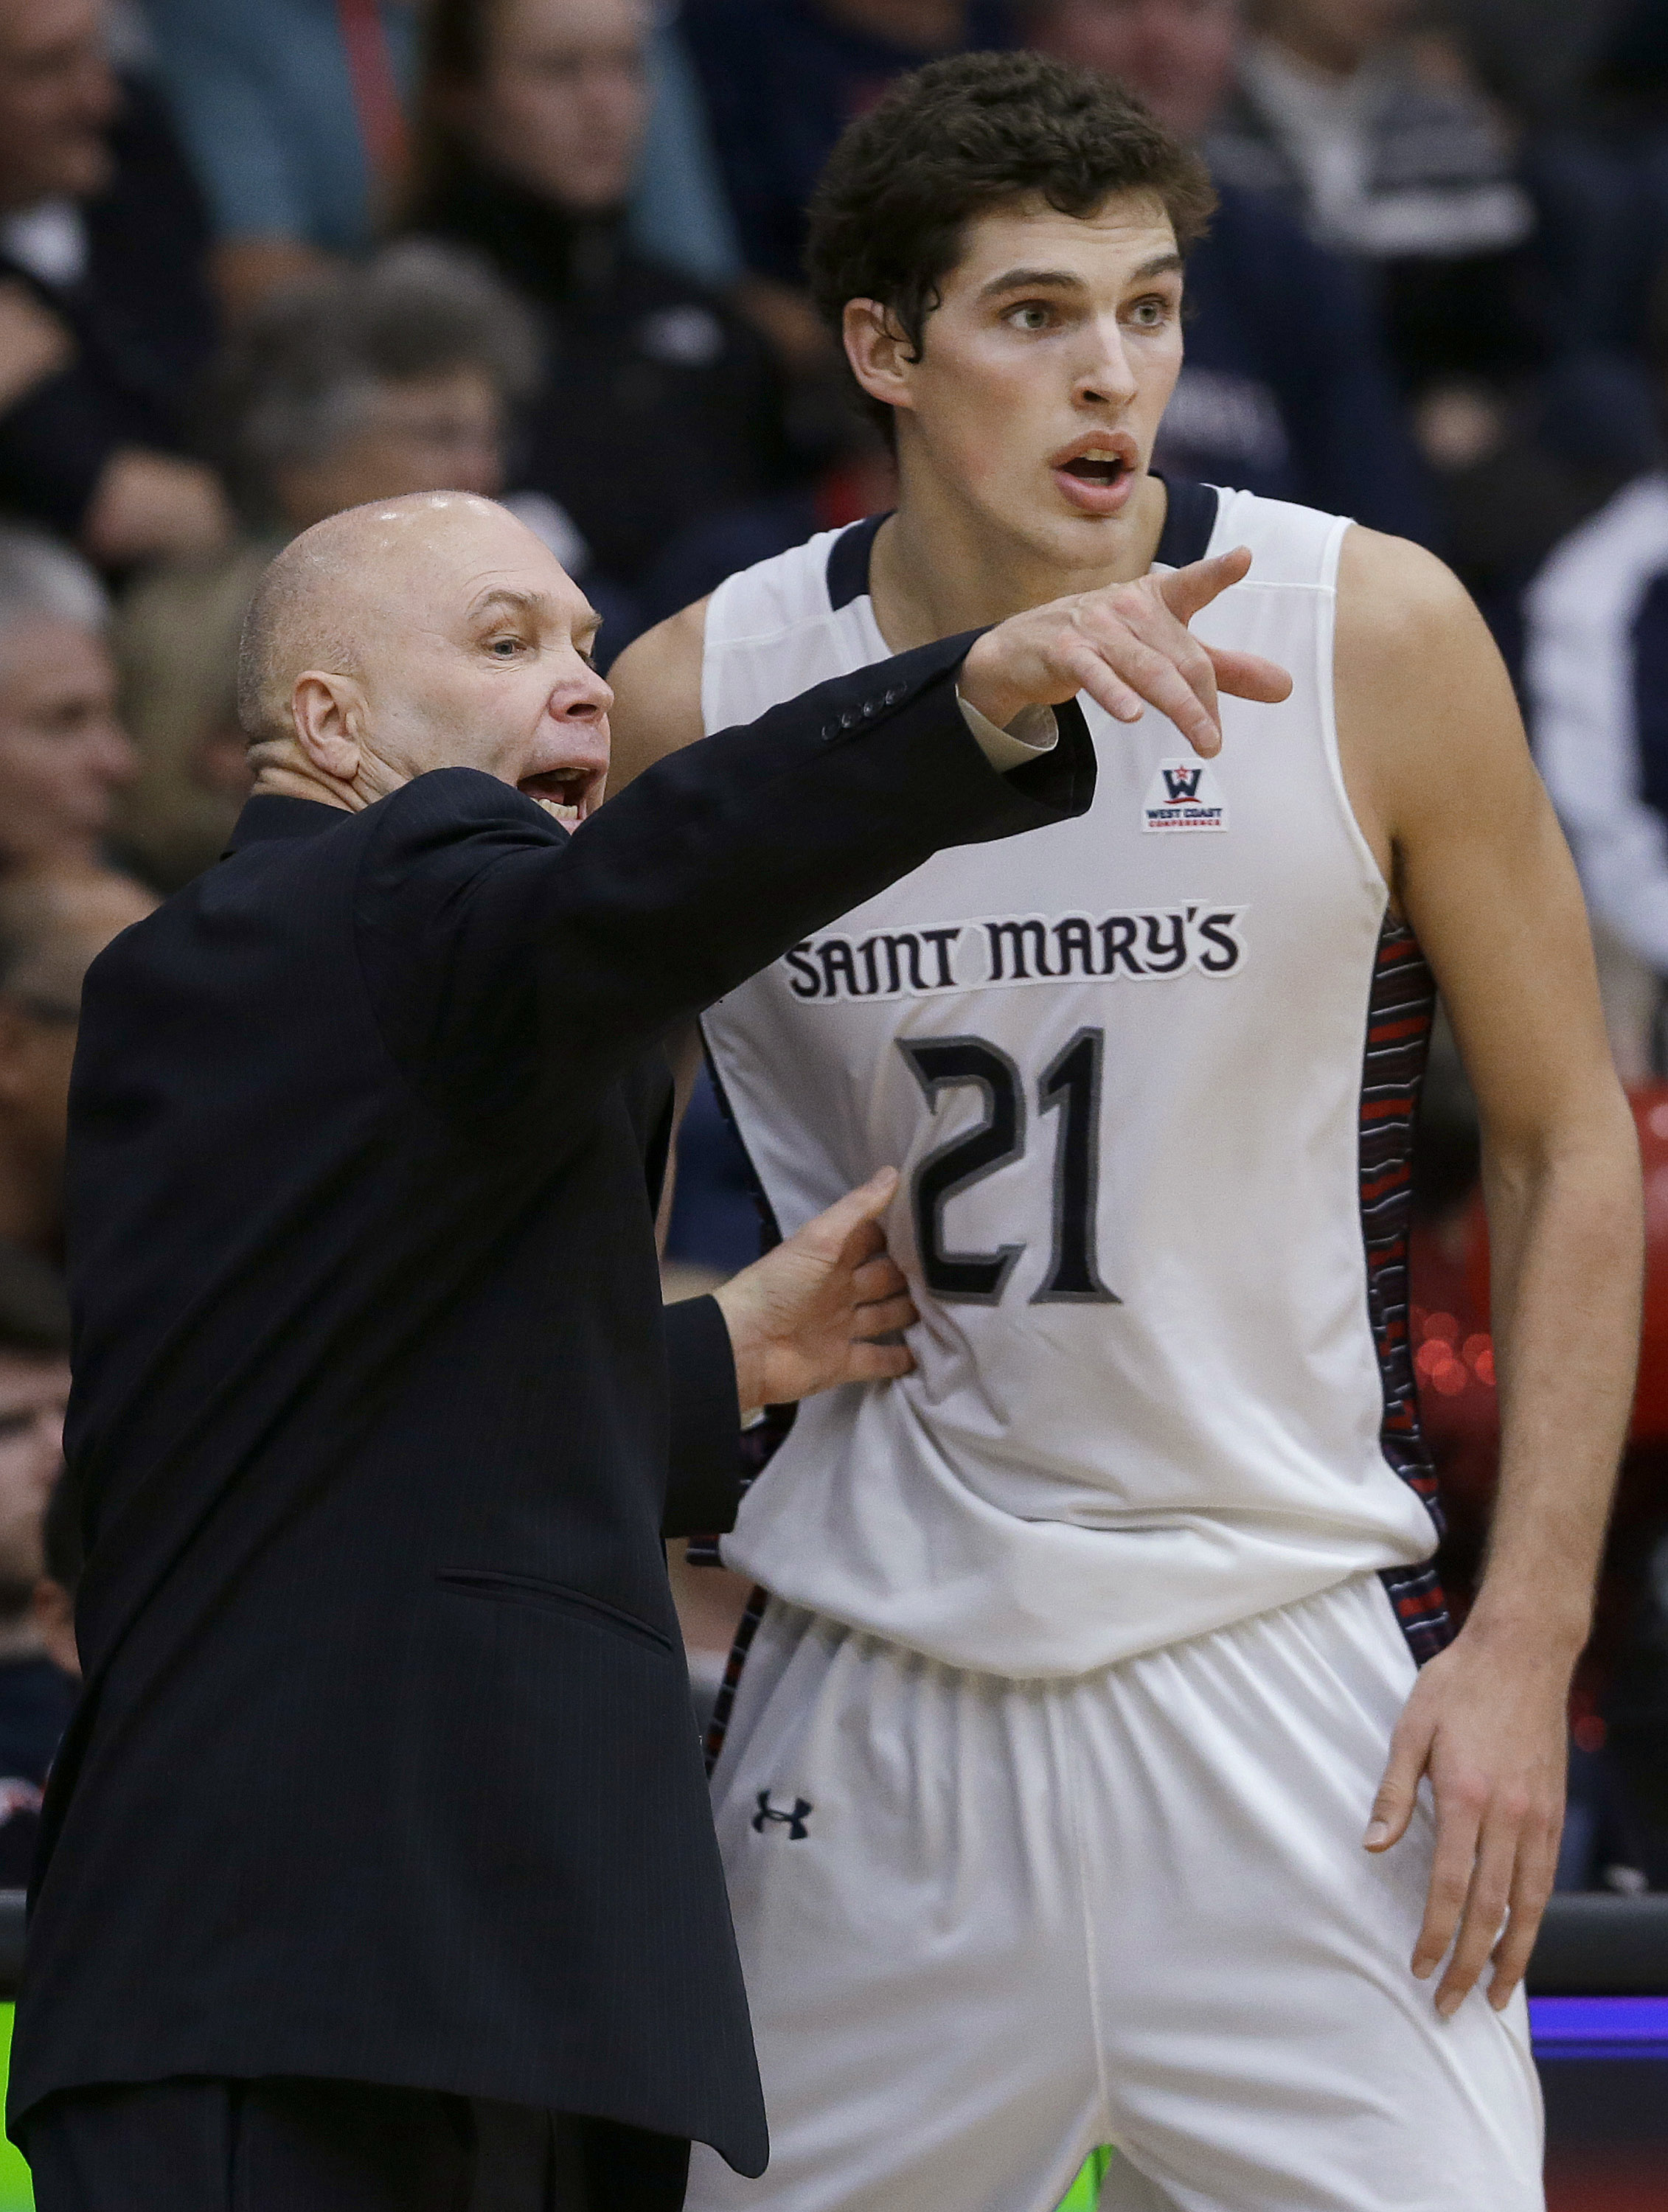 Saint Mary's (Calif.) coach Randy Bennett talks with center Evan Fitzner during the second half of an NCAA college basketball game against BYU in Moraga, Calif., Thursday, Dec. 31, 2015. Saint Mary's won 85-74. (AP Photo/Jeff Chiu)